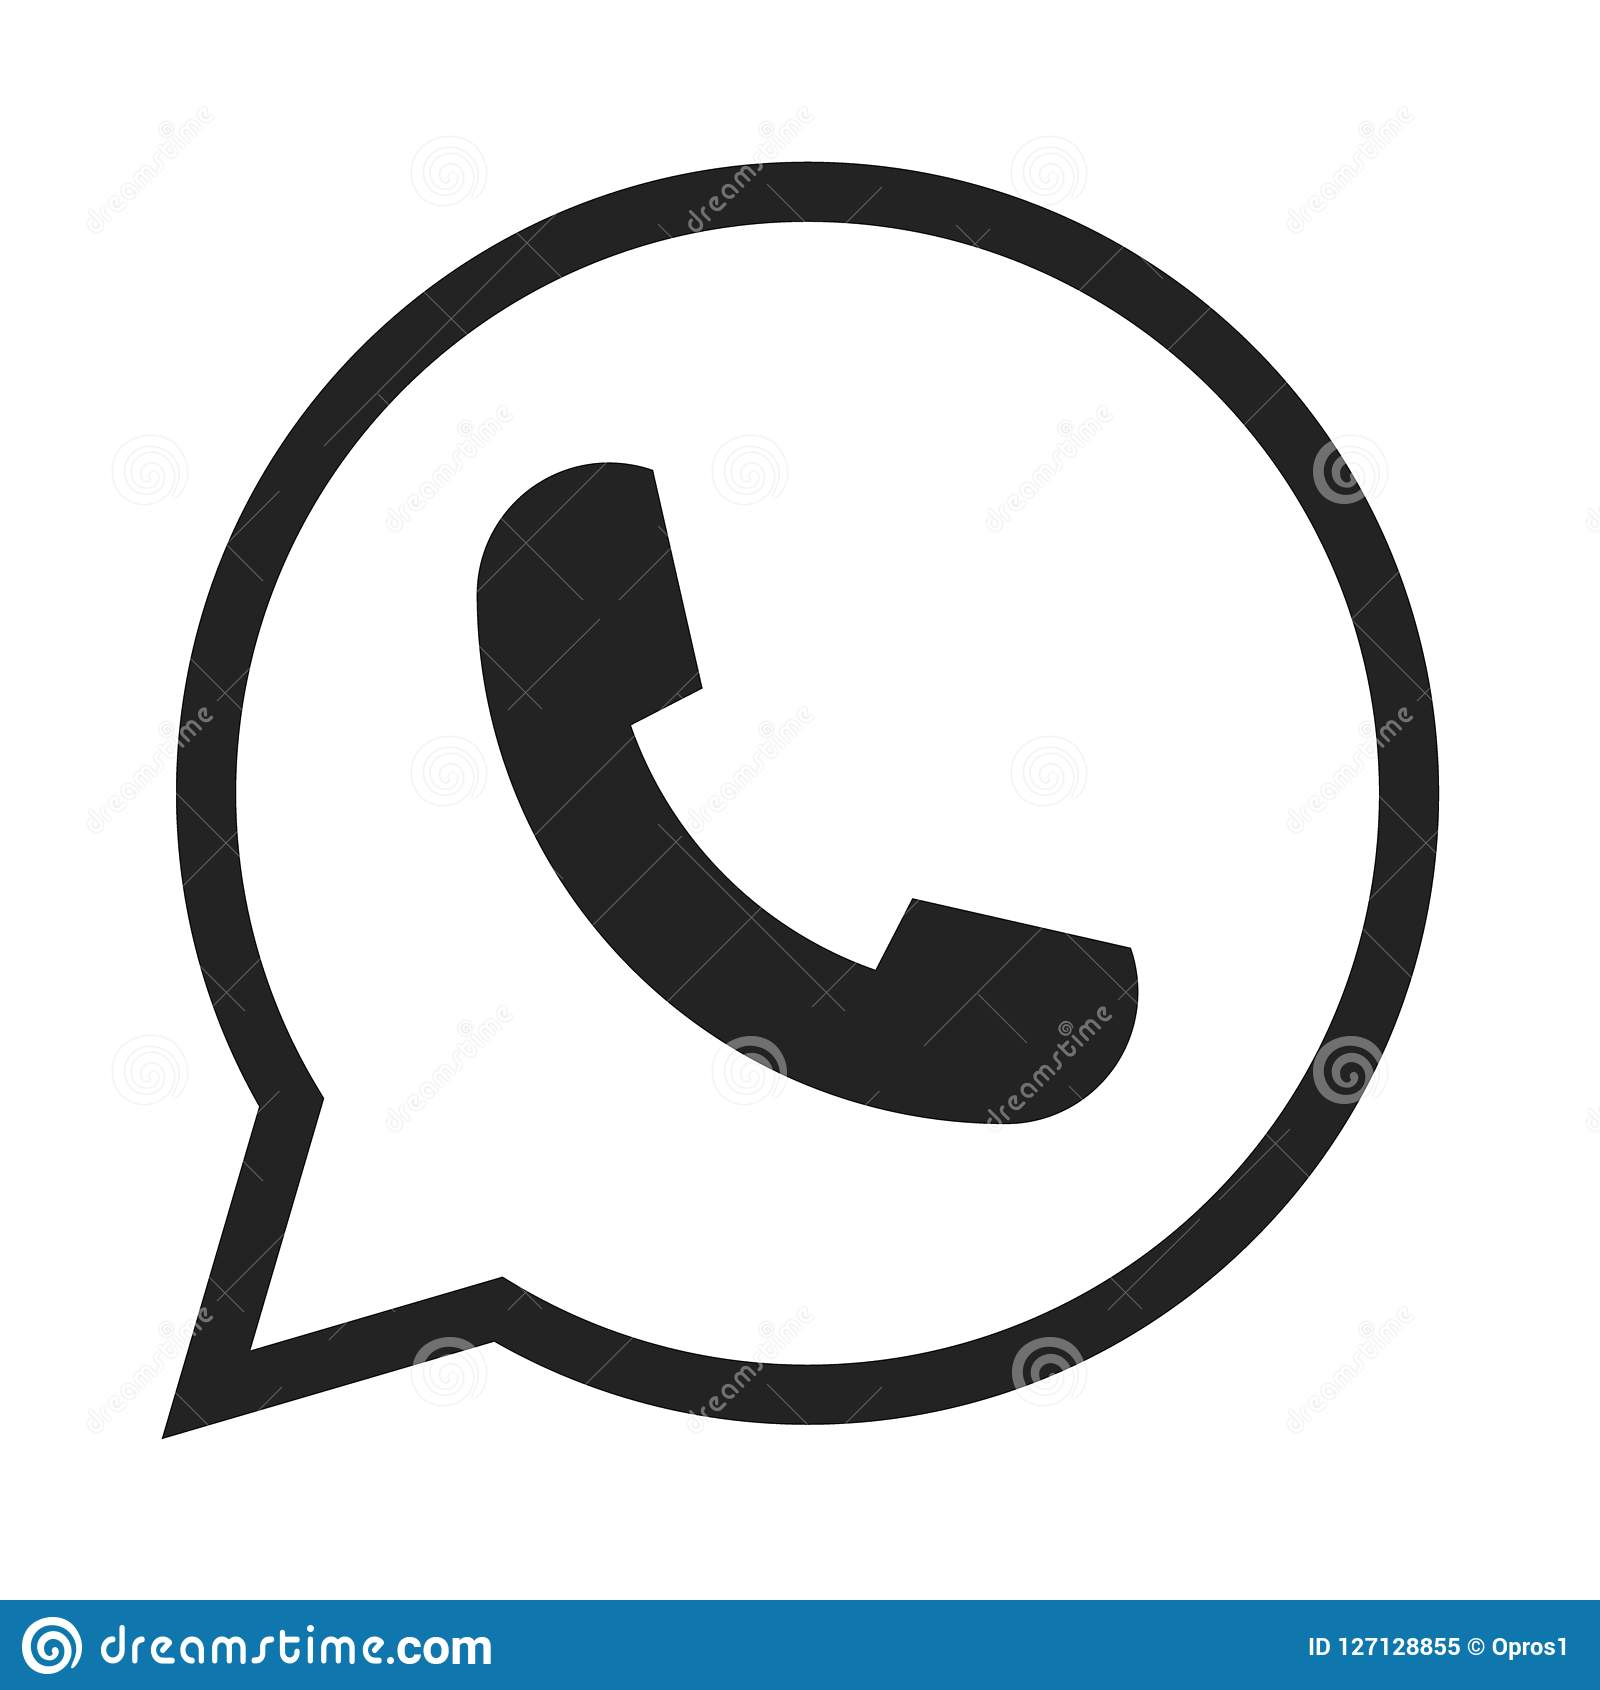 Telephone icon symbol, vector, whatsapp logo symbol. Phone pictogram, flat vector sign isolated on white background